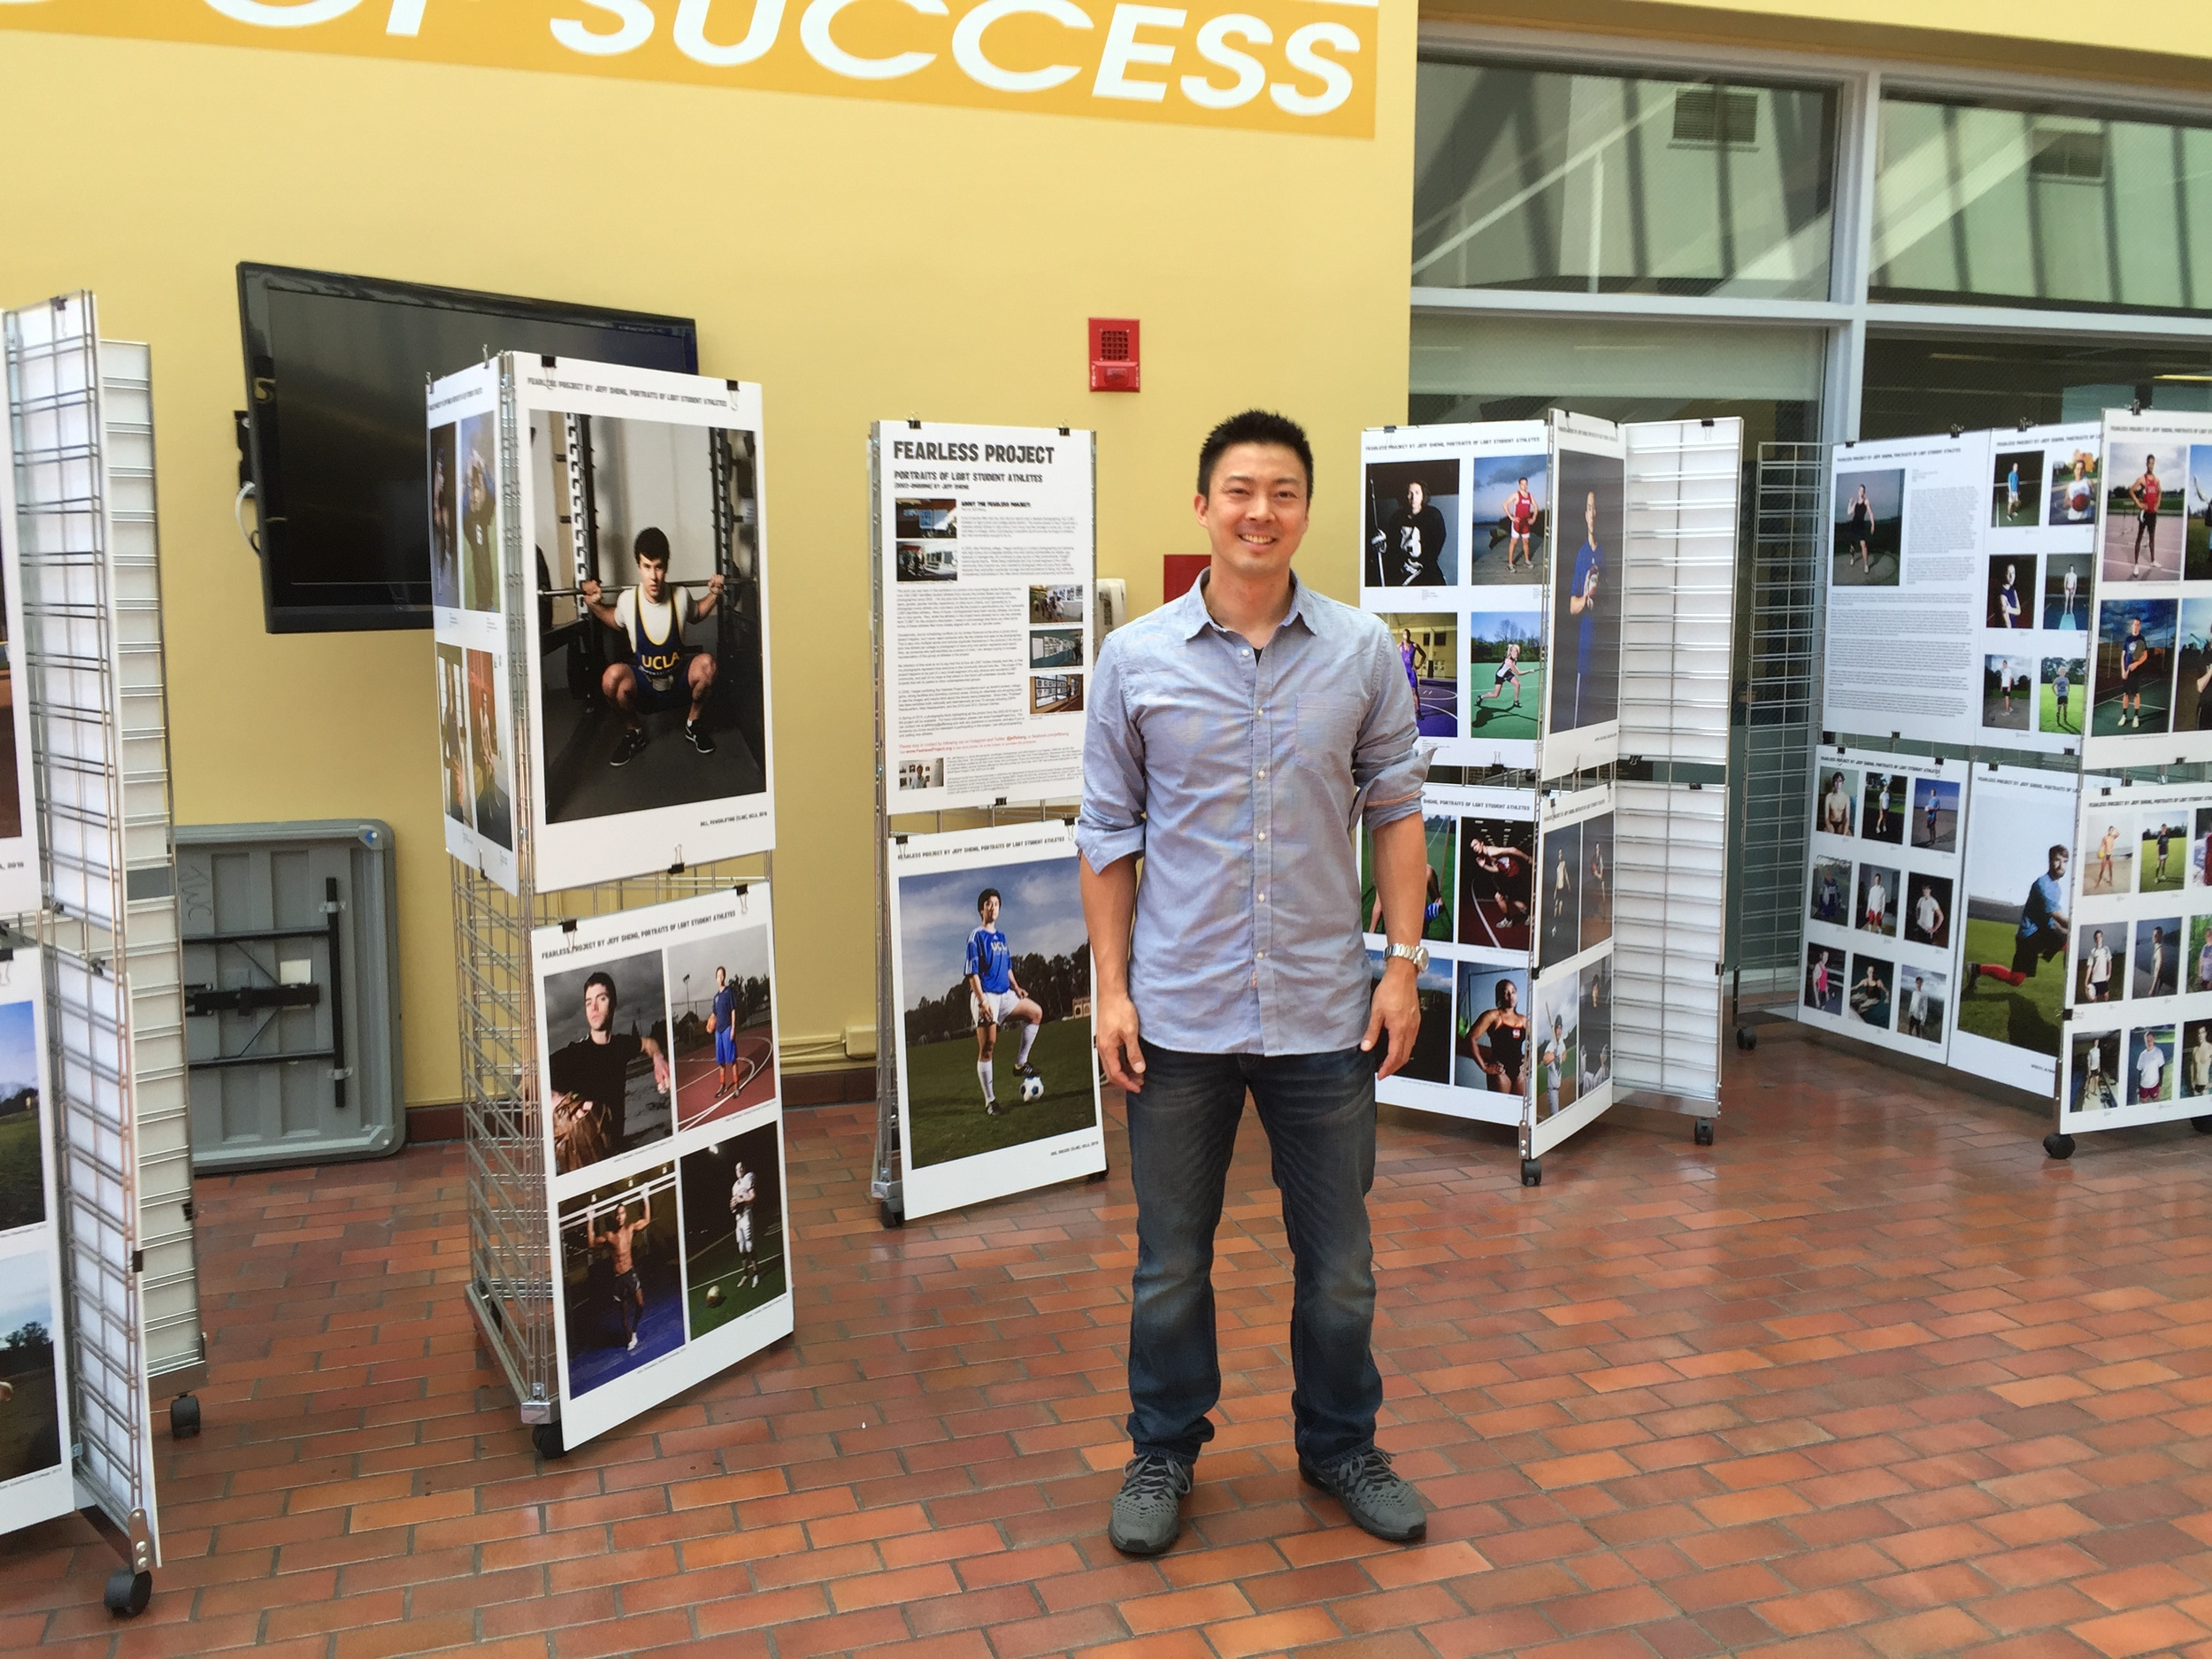 Jeff Sheng at Fearless Project exhibition in the Wooden Center at UCLA, 2015.